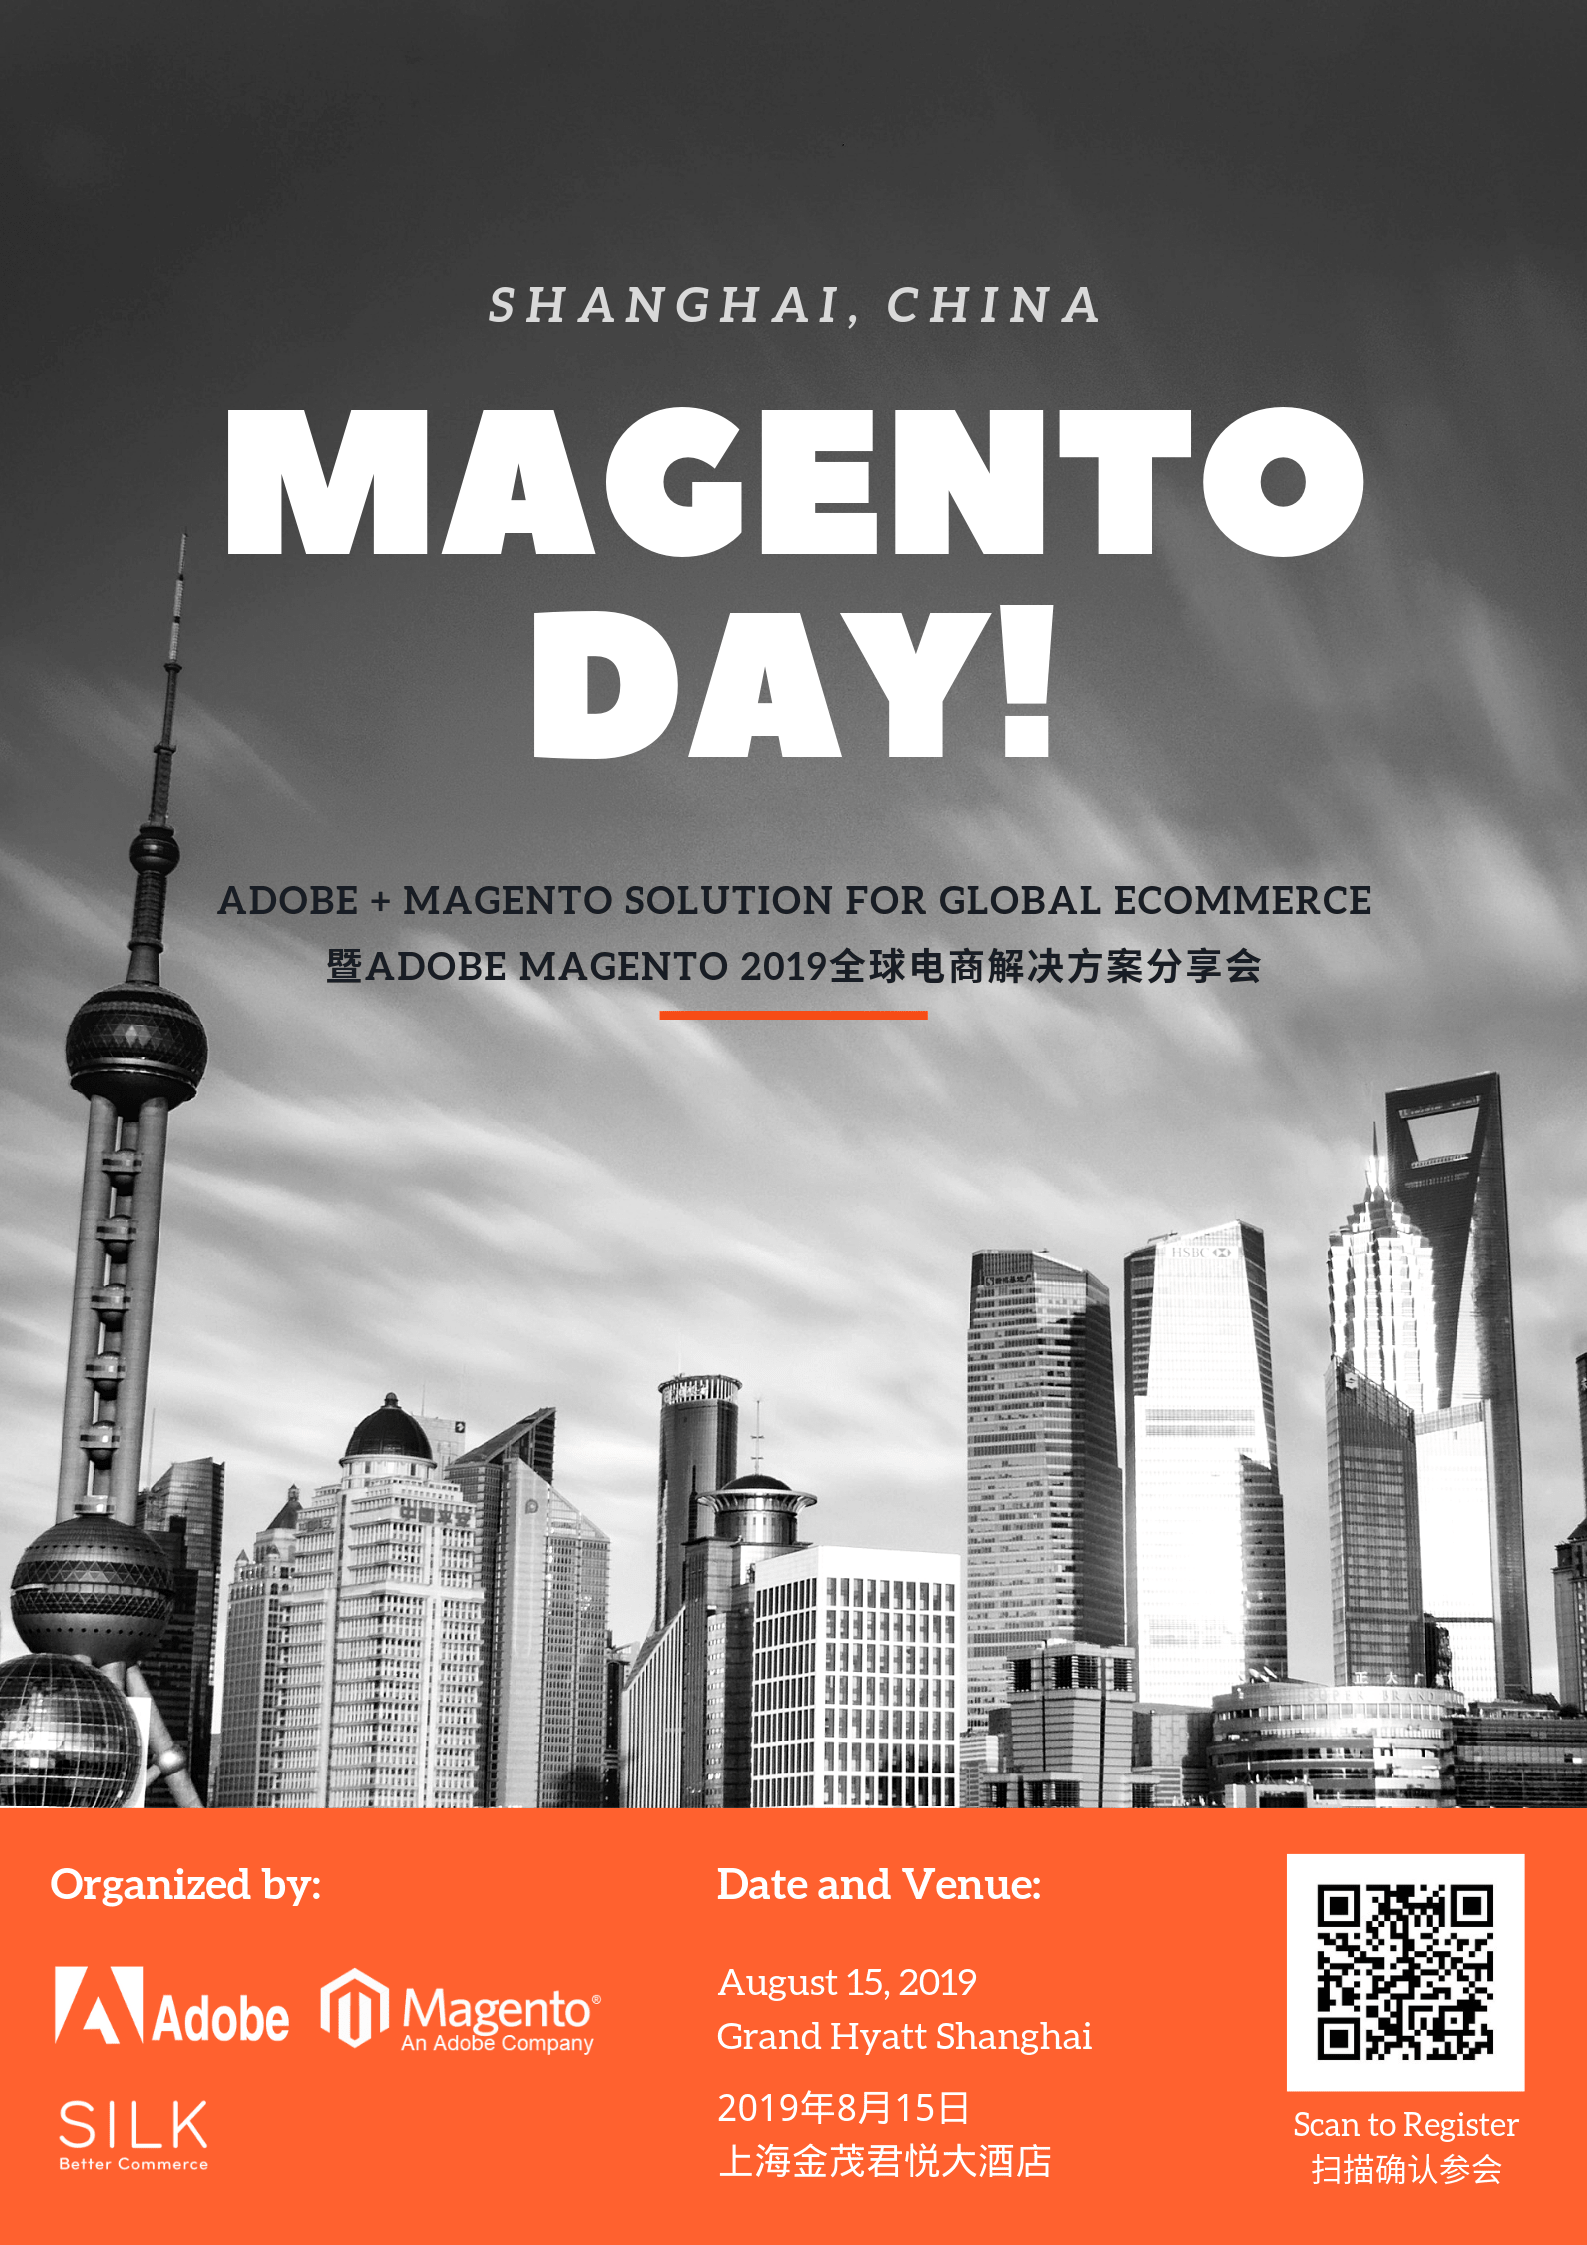 Join Adobe, Magento, and Silk Software for Magento Day 2019